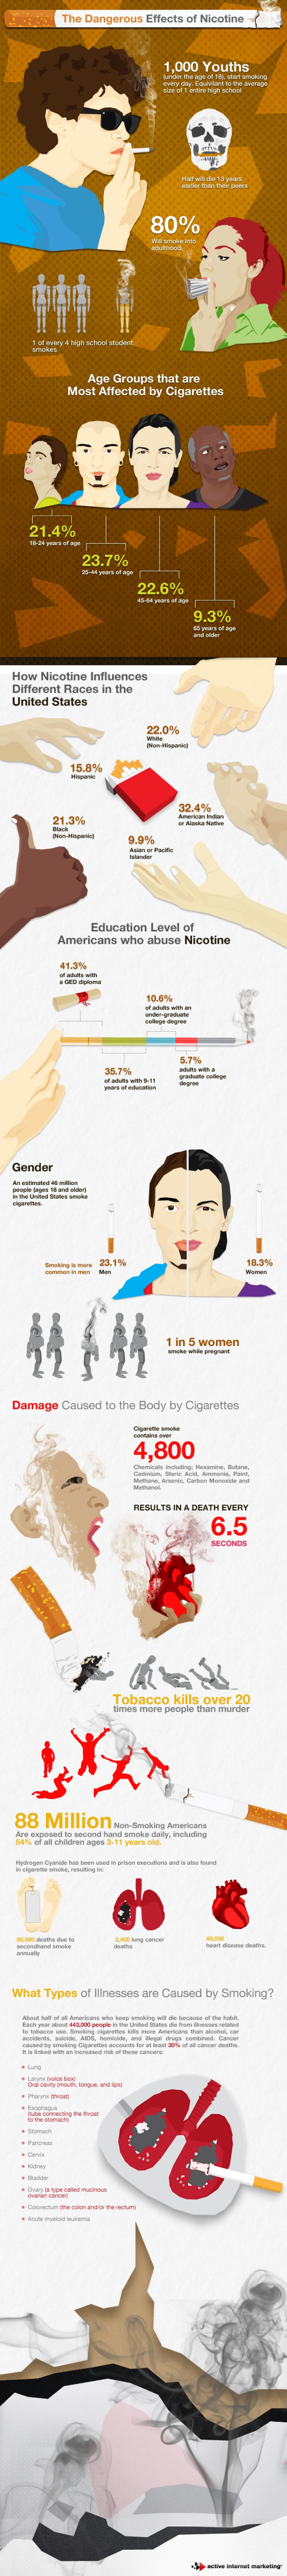 8. The Dangerous Effects of Nicotine